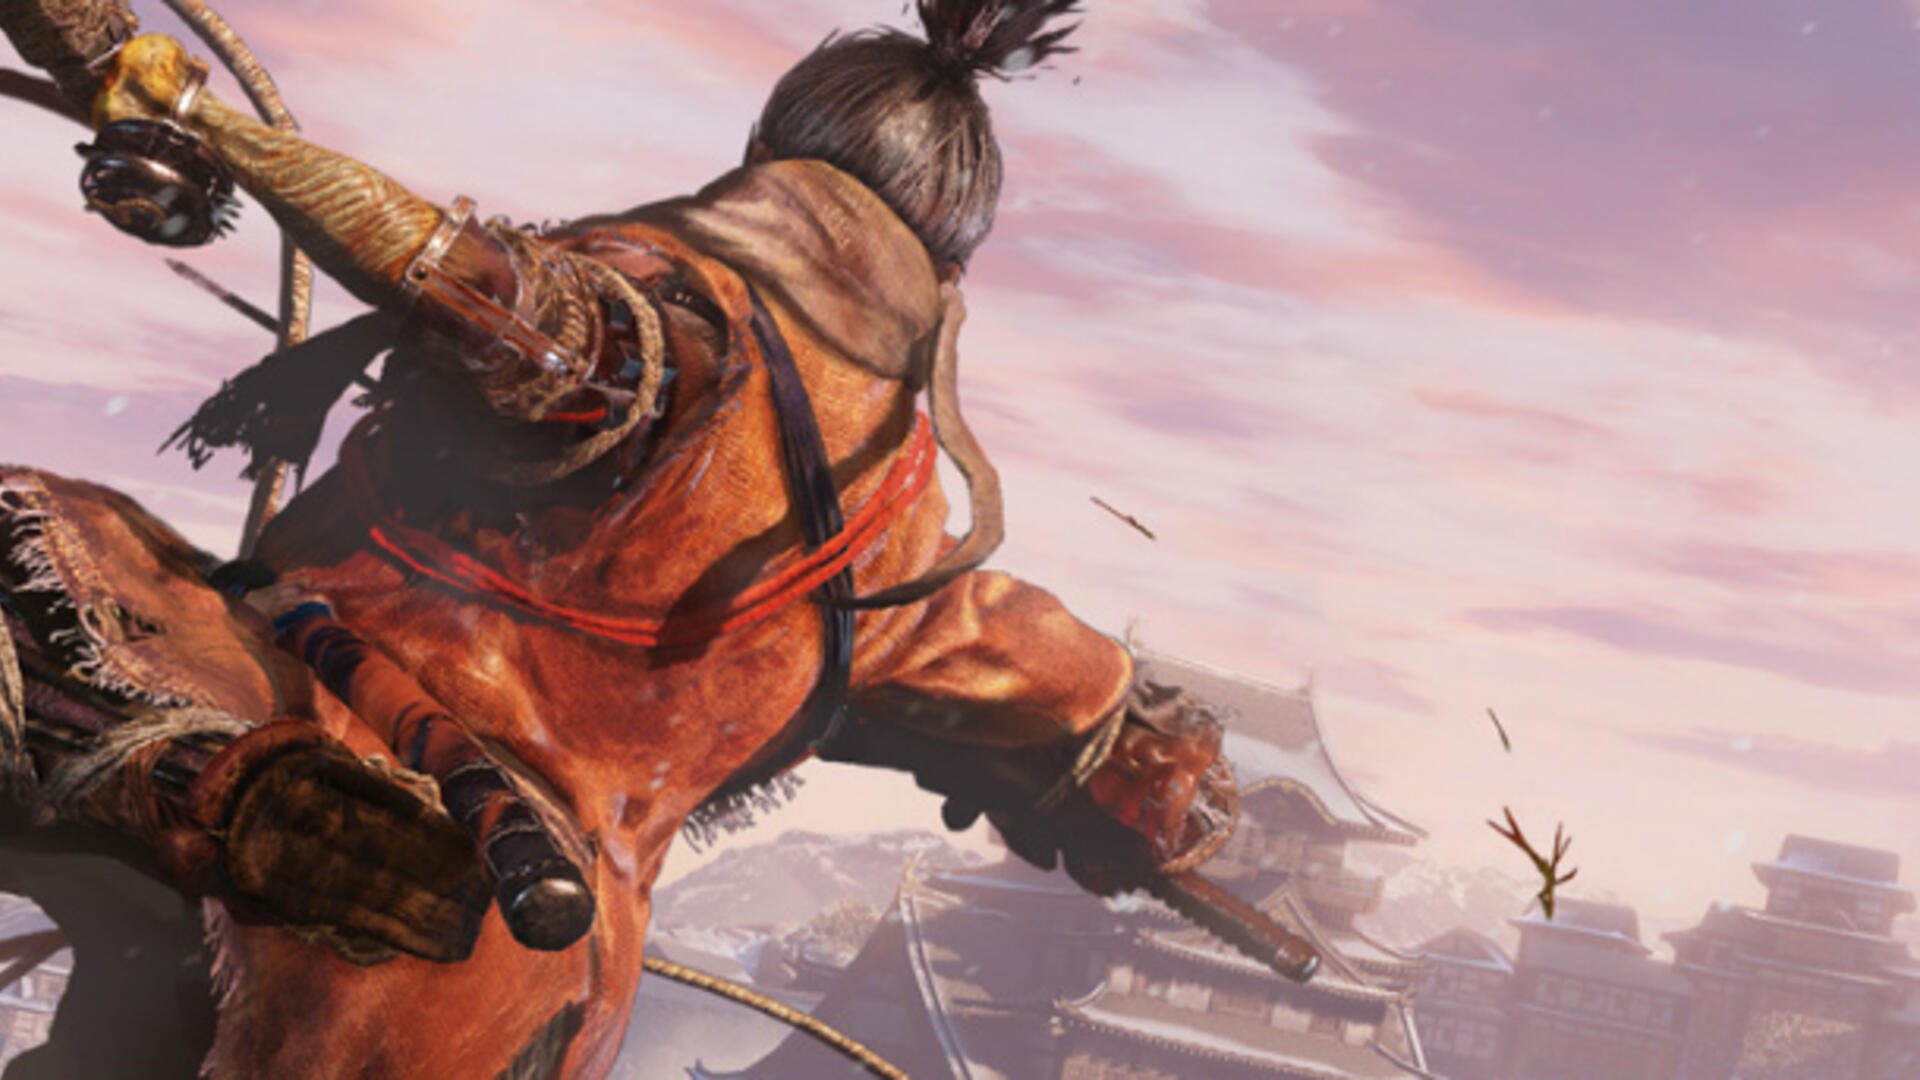 Sekiro: Shadows Die Twice Release Date Revealed, Collector's Edition Announced